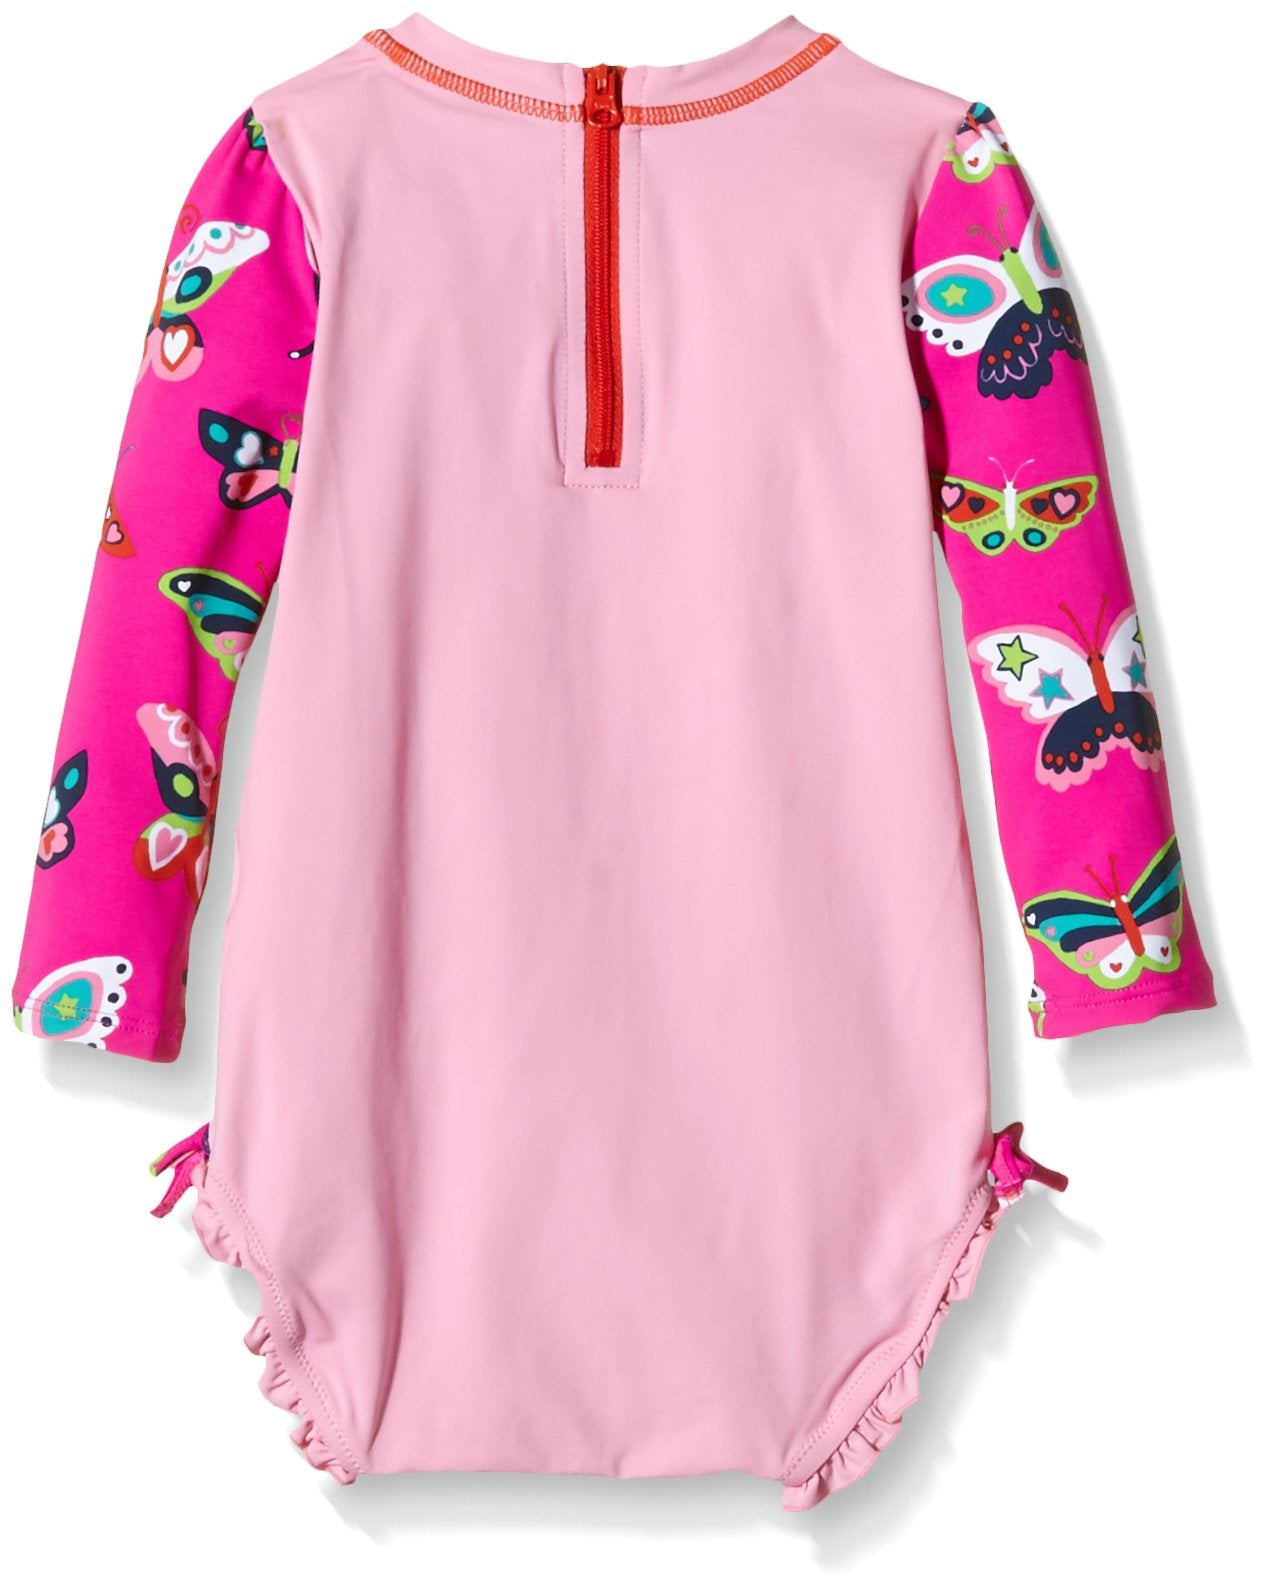 Hatley Girls' Electric Butterflies Rash Guard, Pink, 6-12 Months